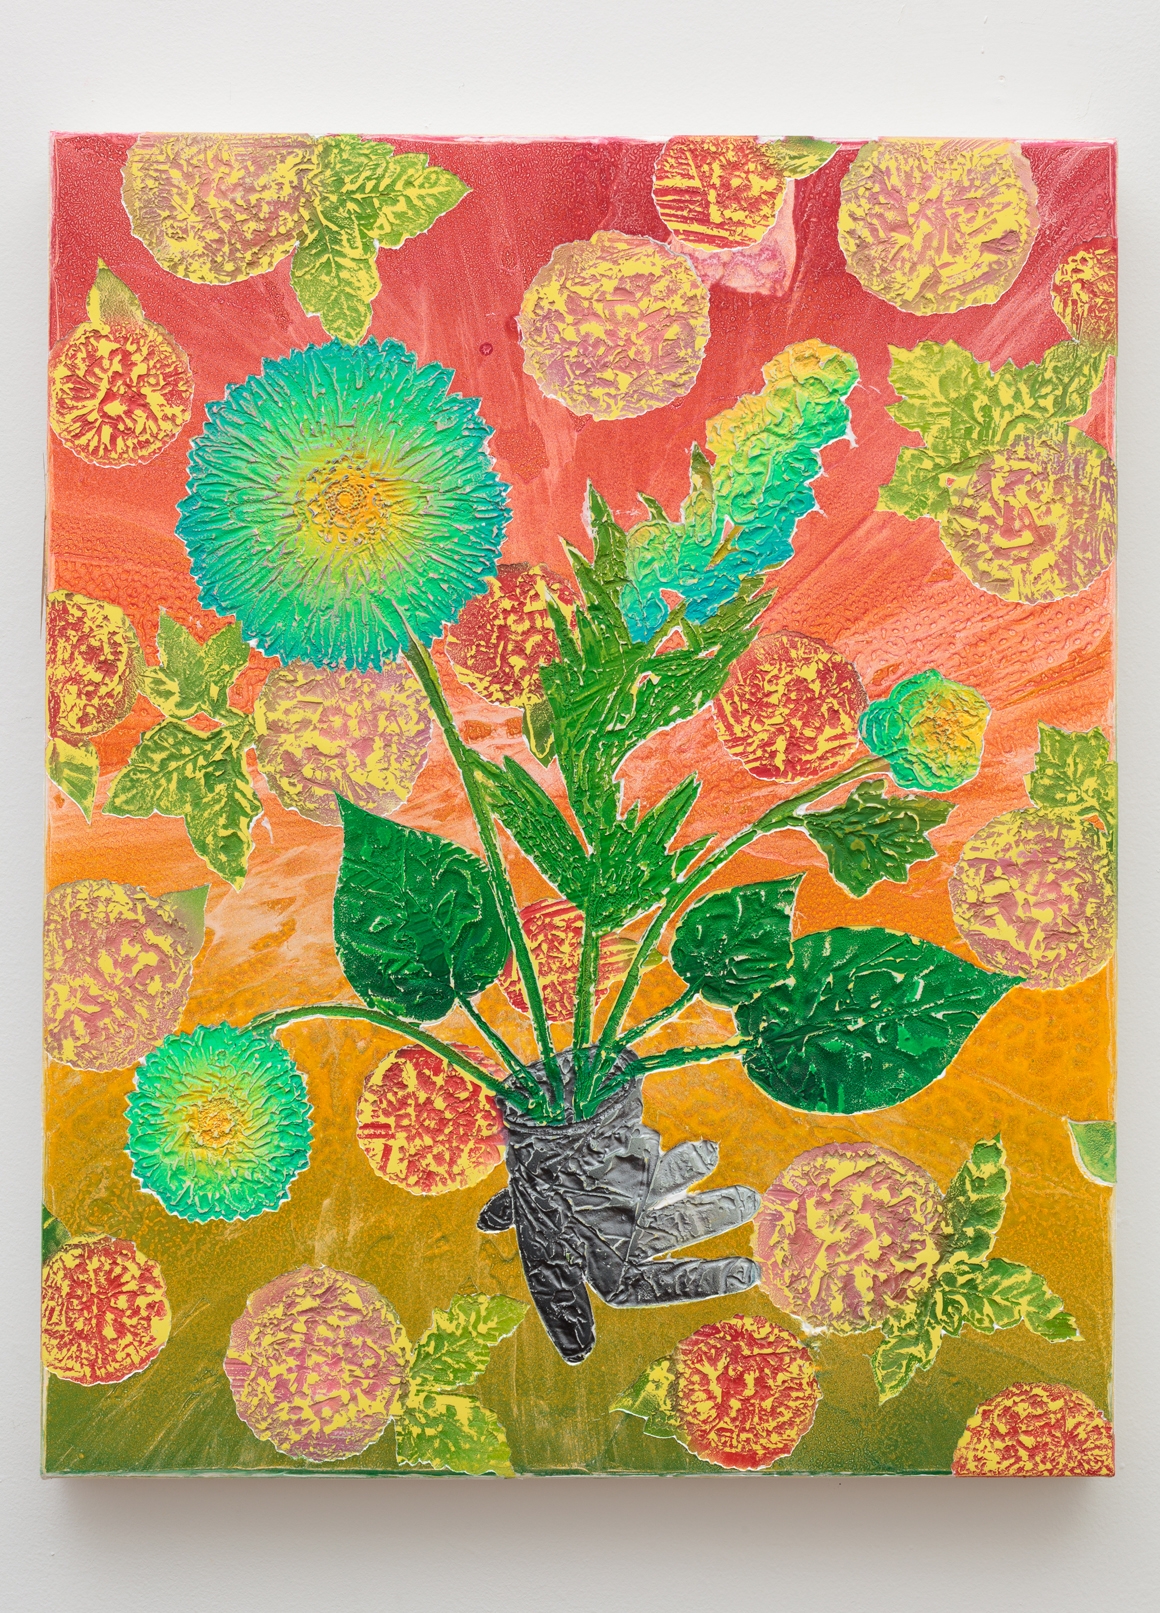 "<p><span class=""name"">Joey Cocciardi</span><br><em>Blooming-General-Tree</em><span class='media'>Rubber, resins and paint on canvas</span>24 x 30 in (61 x 76.2 cm)<br>2017<br><a class='inquire' href='mailto:info@gildargallery.com?subject=Artwork Inquiry JCOC0038&body=I am interested in finding out more about Blooming-General-Tree by Joey Cocciardi'>Inquire</a></p>"